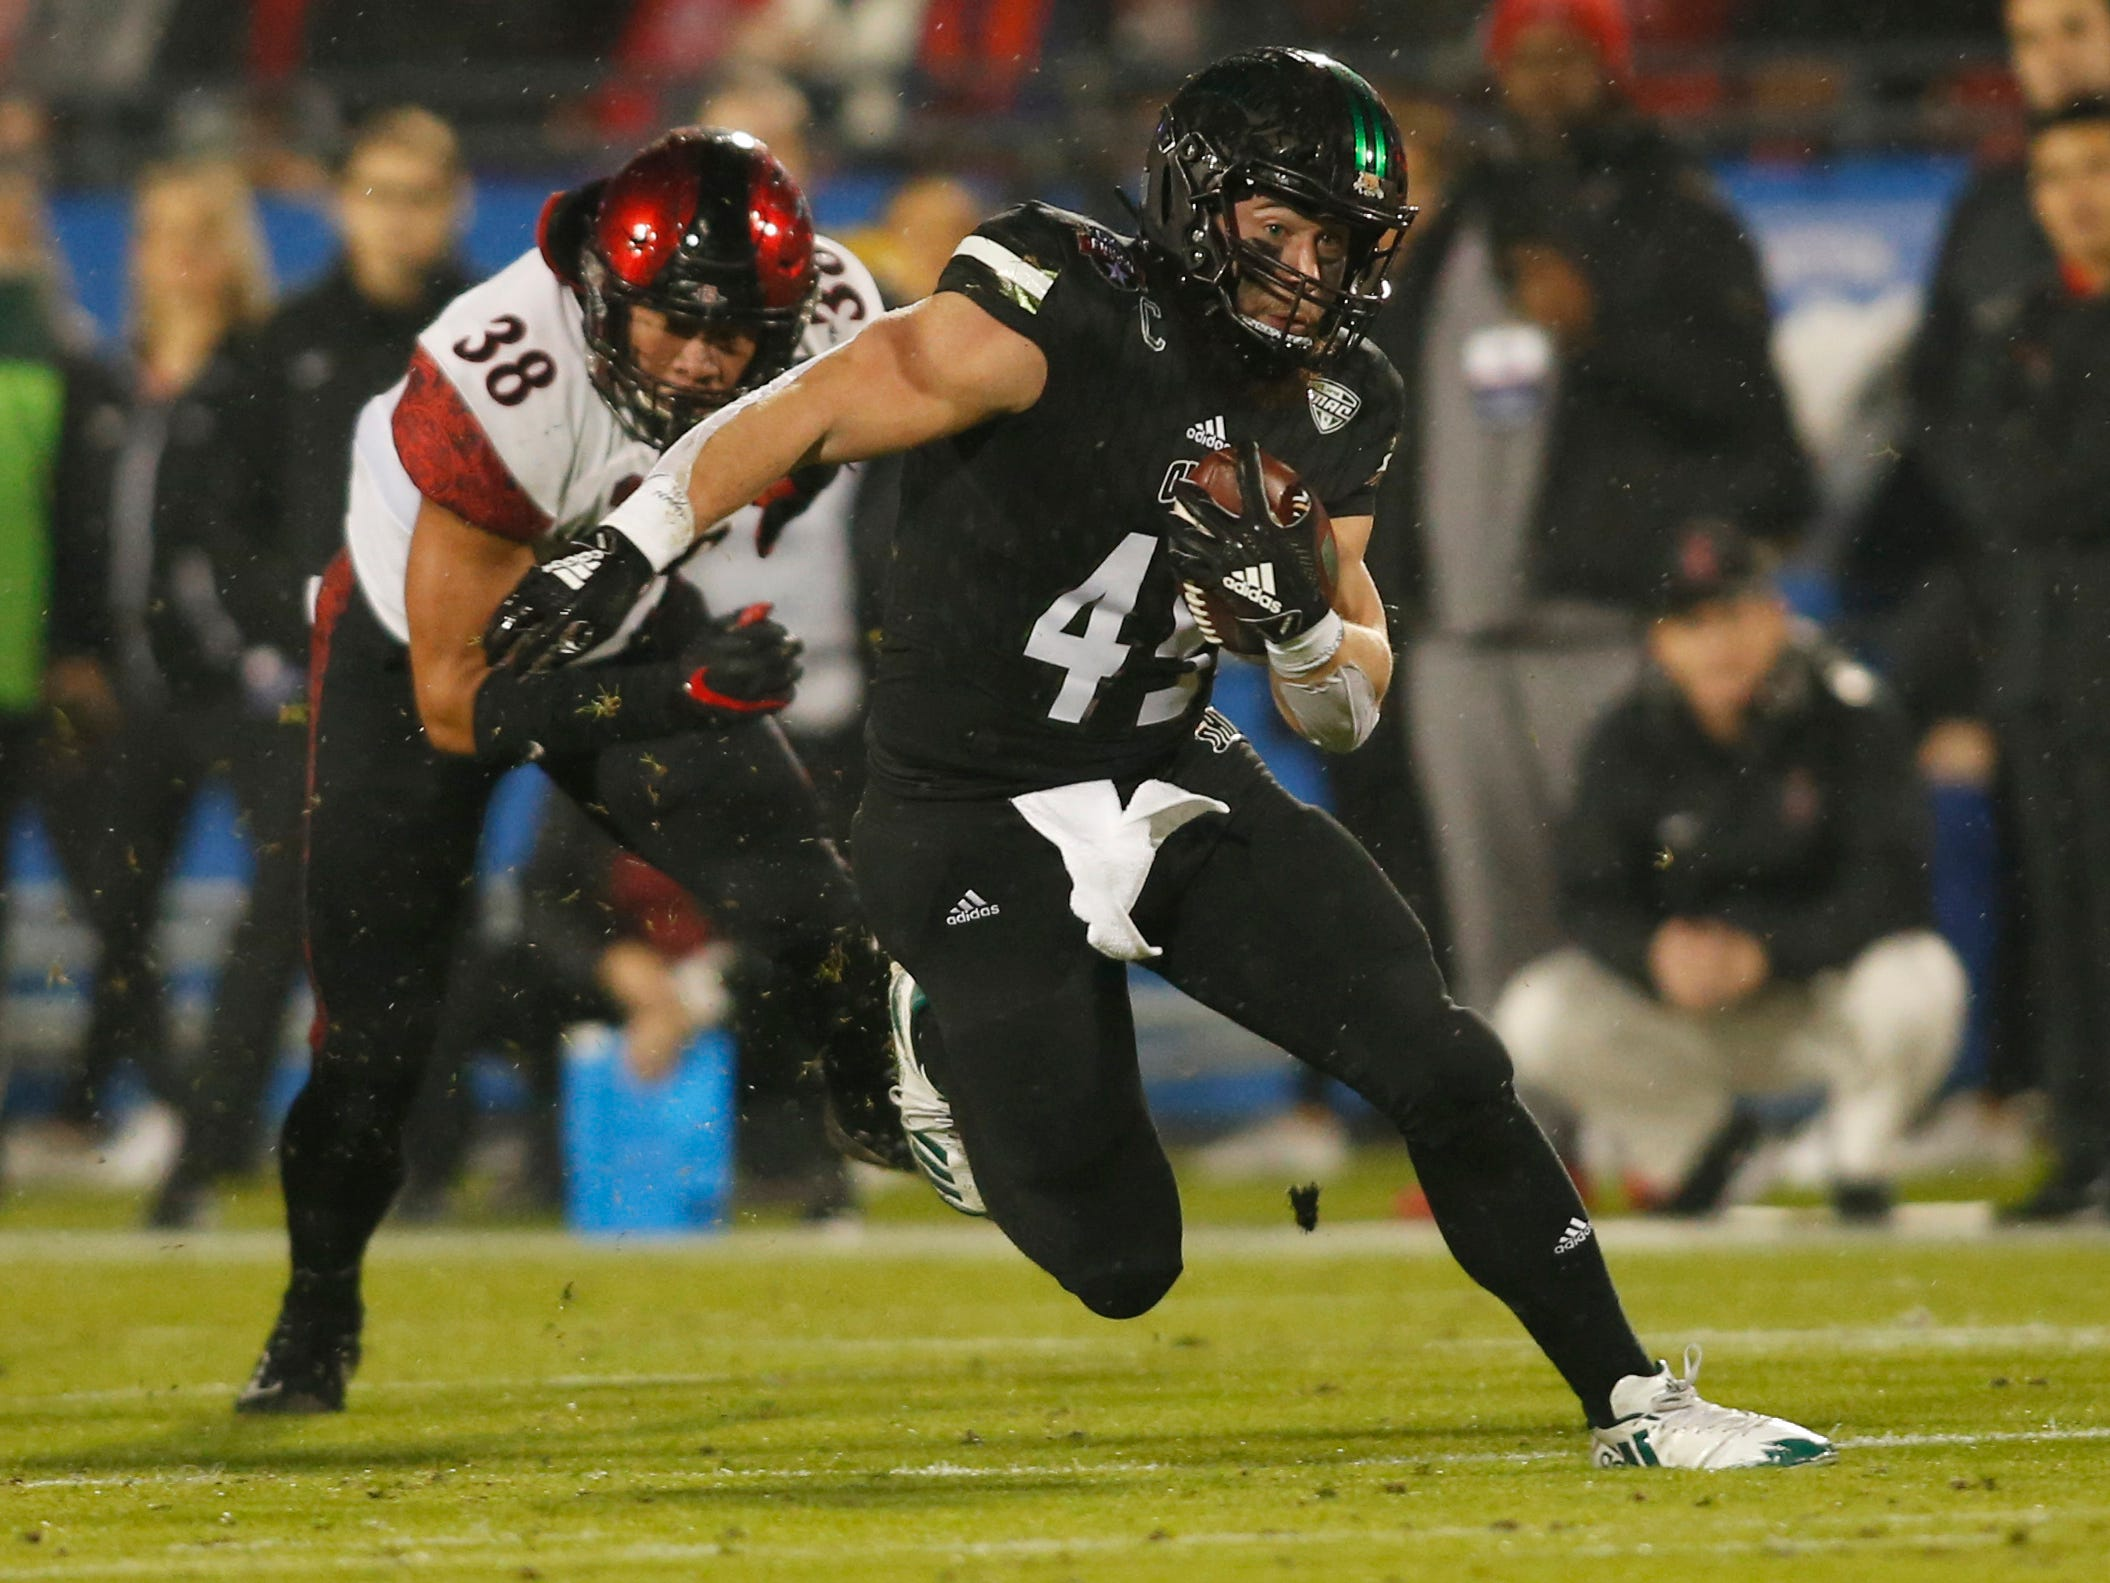 Ohio running back A.J. Ouellette (45) runs against San Diego State linebacker Andrew Aleki (38) in the first quarter in the Frisco Bowl at Toyota Stadium.